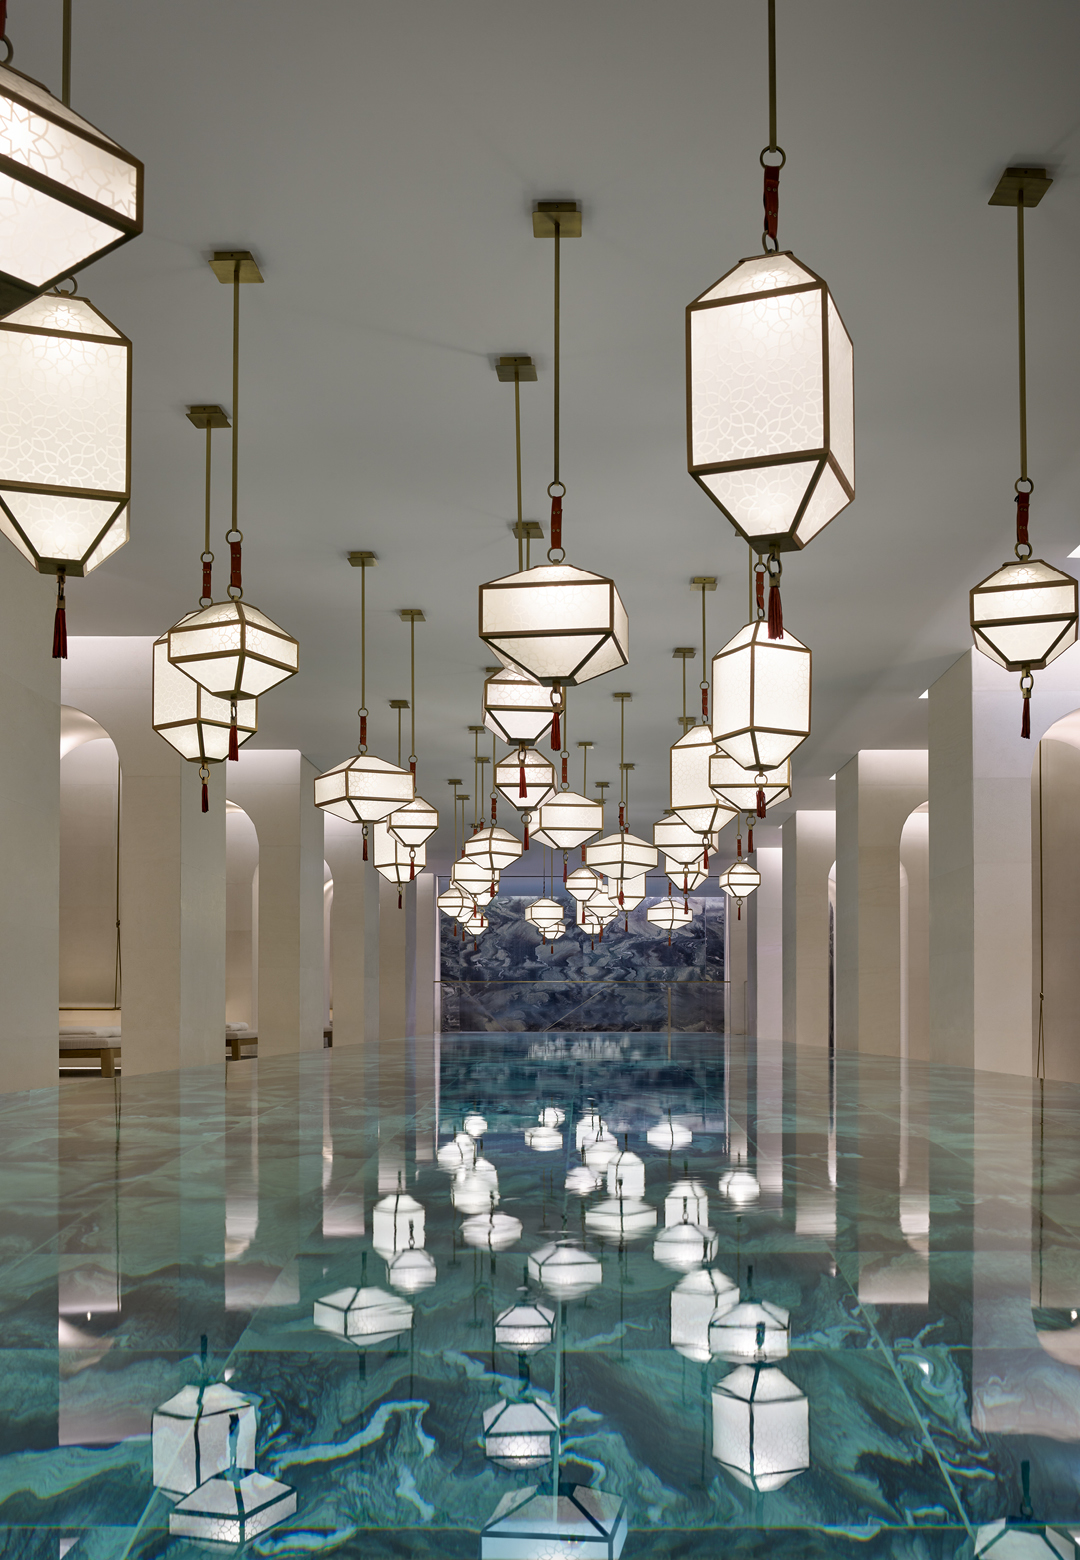 The indoor pool enjoys the attention of glowing lanterns hanging at various heights above it | Four Seasons Kuwait | Yabu Pushelberg | George Yabu, Glenn Pushelburg | STIR